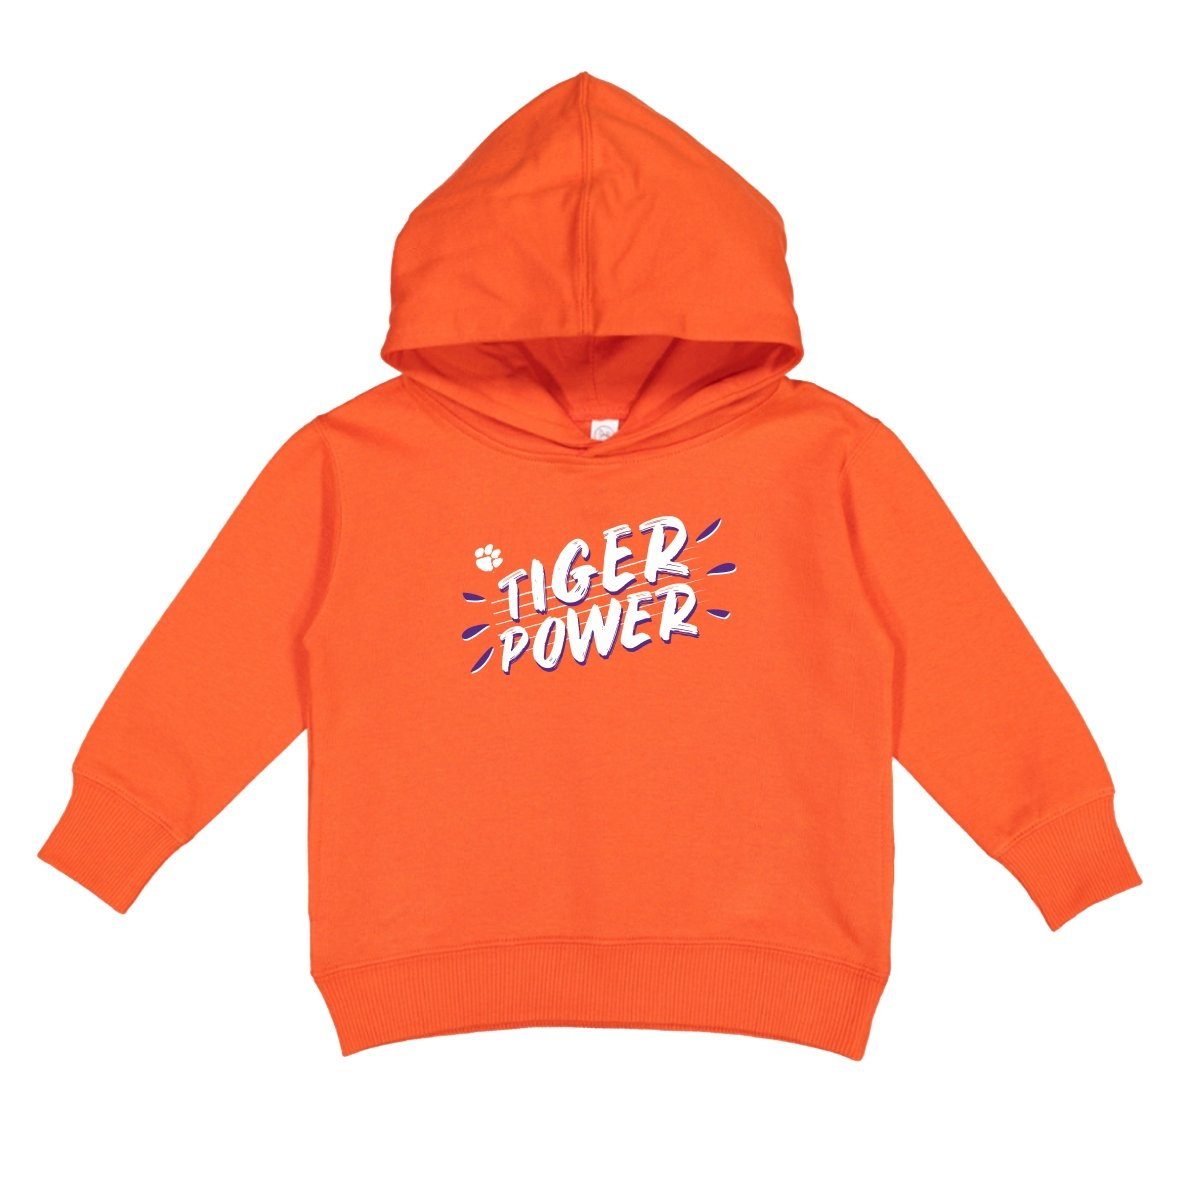 Toddler Hoodie Tiger Power - Mr. Knickerbocker